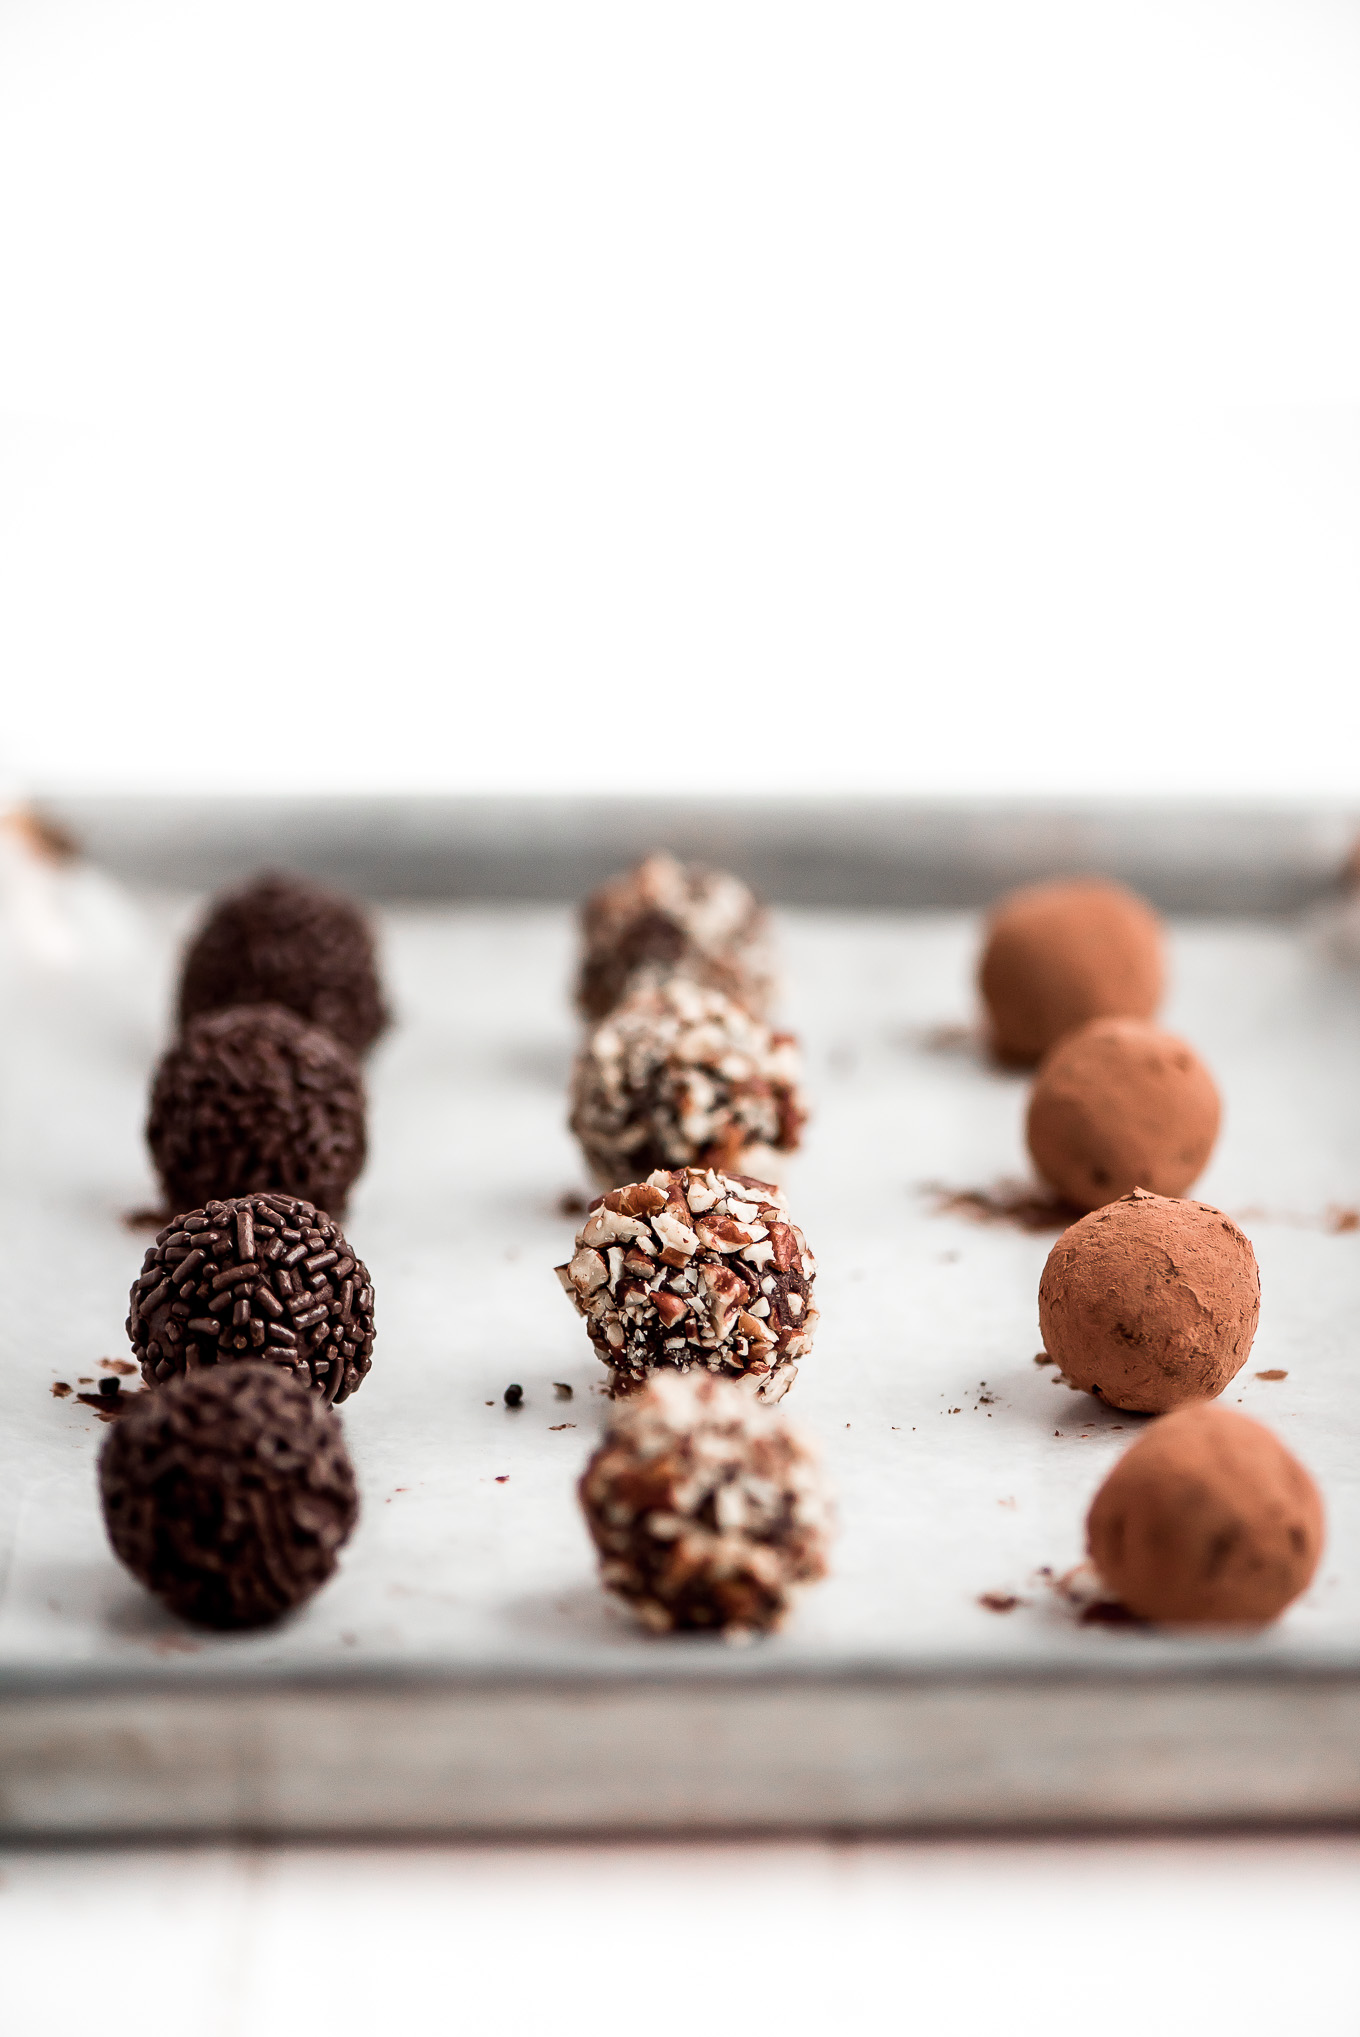 3 kinds of homemade Chocolate Truffles on a baking sheet- chocolate sprinkle, pecan, and cocoa.